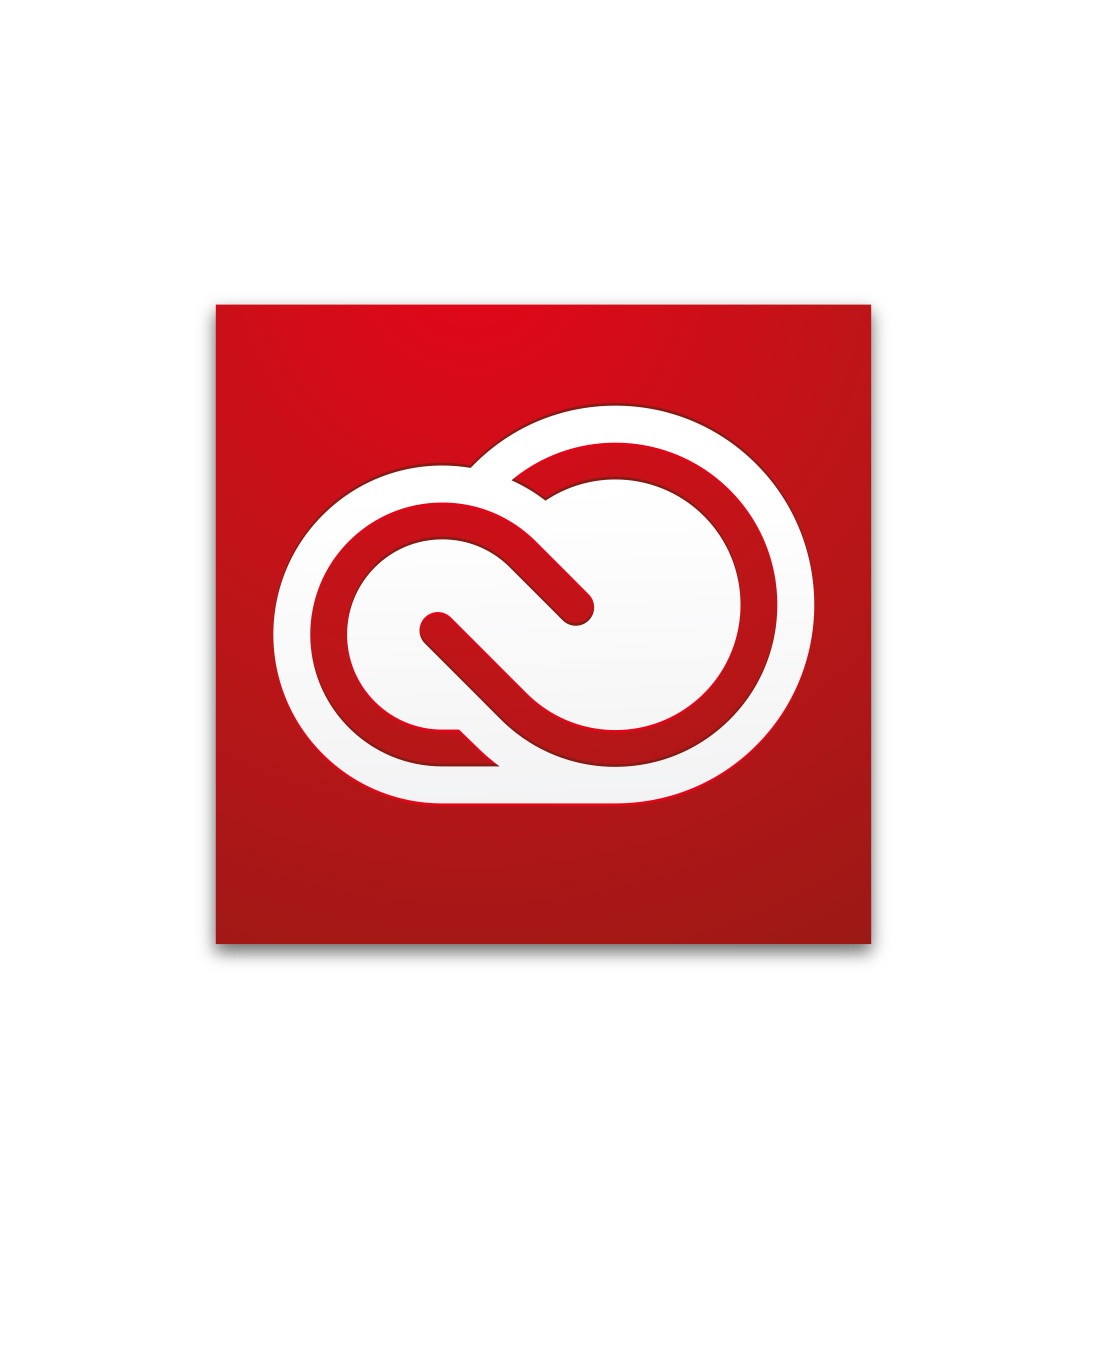 1 Jahr Subscription Renewal für Adobe Creative Cloud for Teams All Apps VIP Lizenz Download Win/Mac, Multilingual (10-49 Lizenzen)